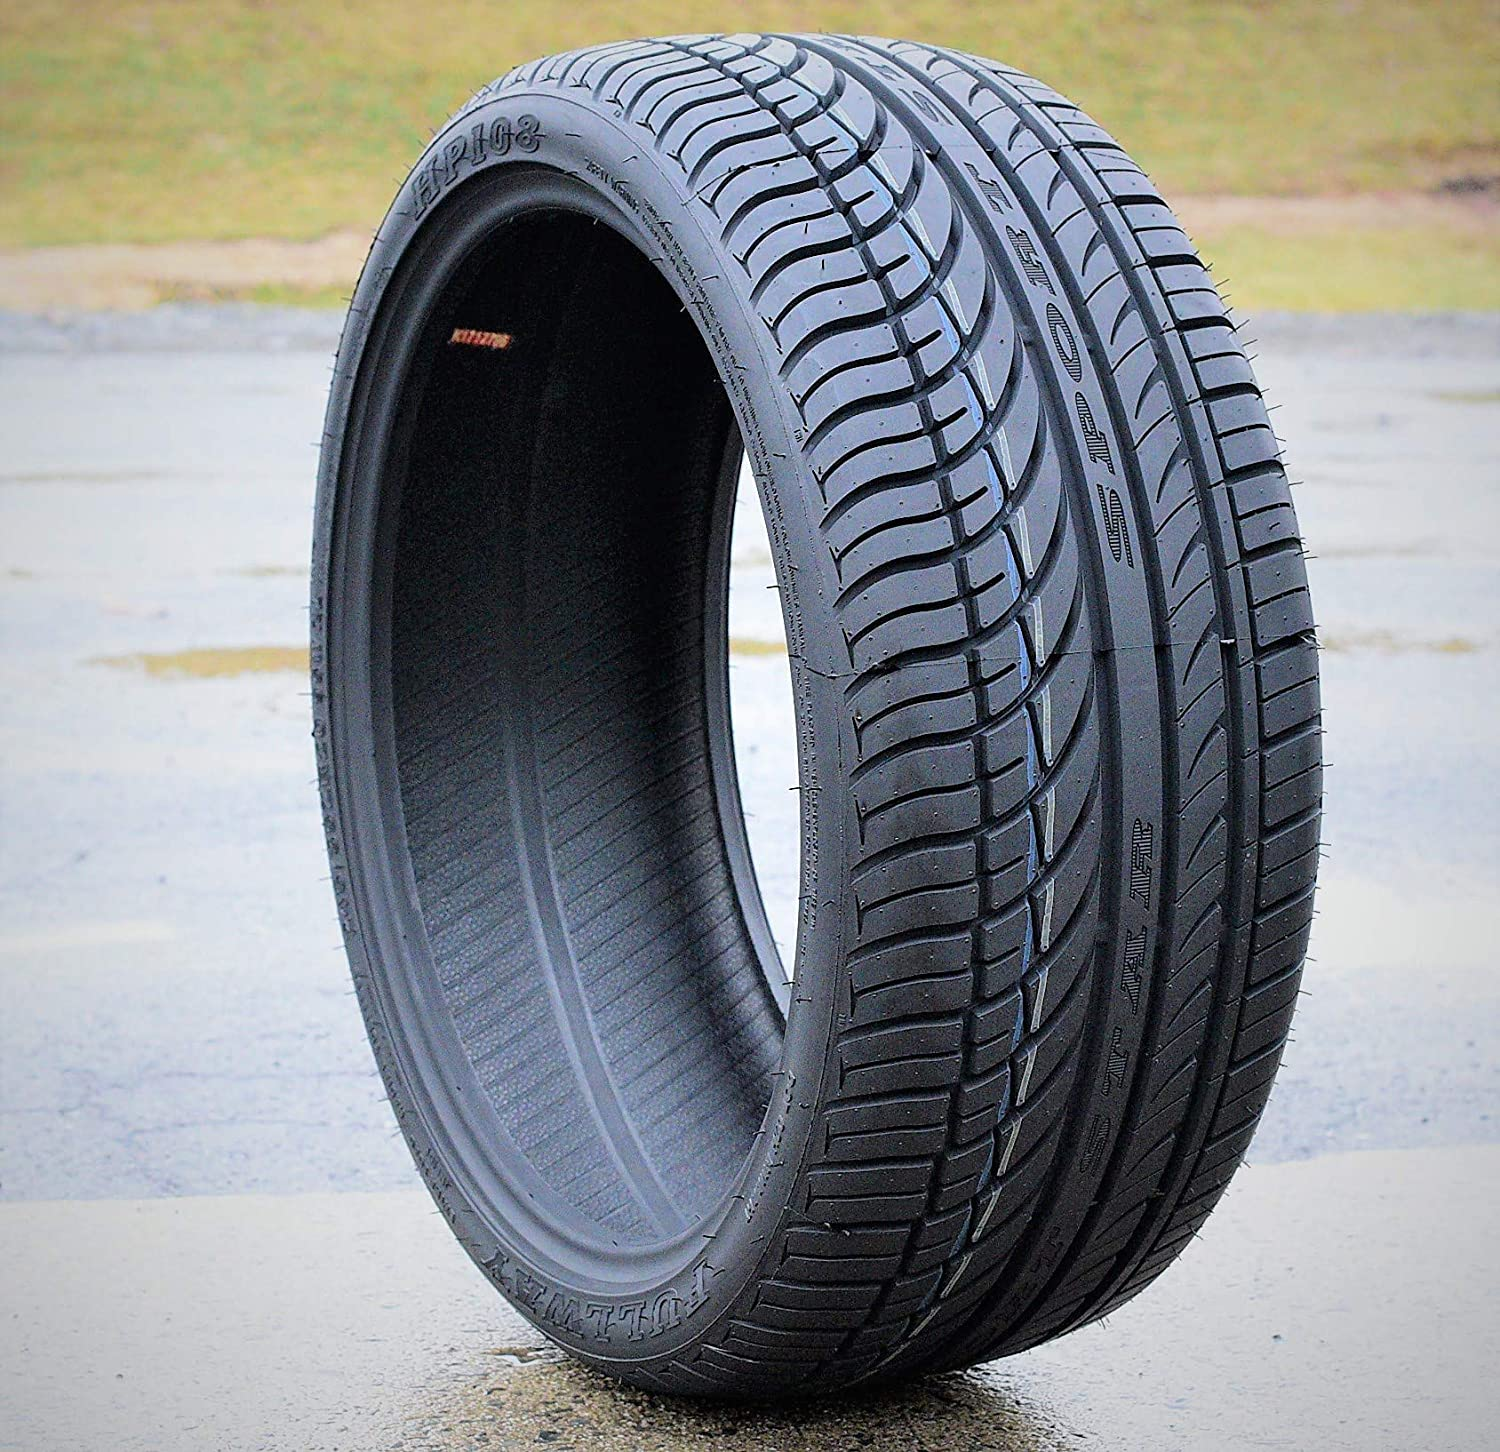 Fullway HP108 High Performance Radial Tires-245//35ZR20 95W XL TWO Set of 2